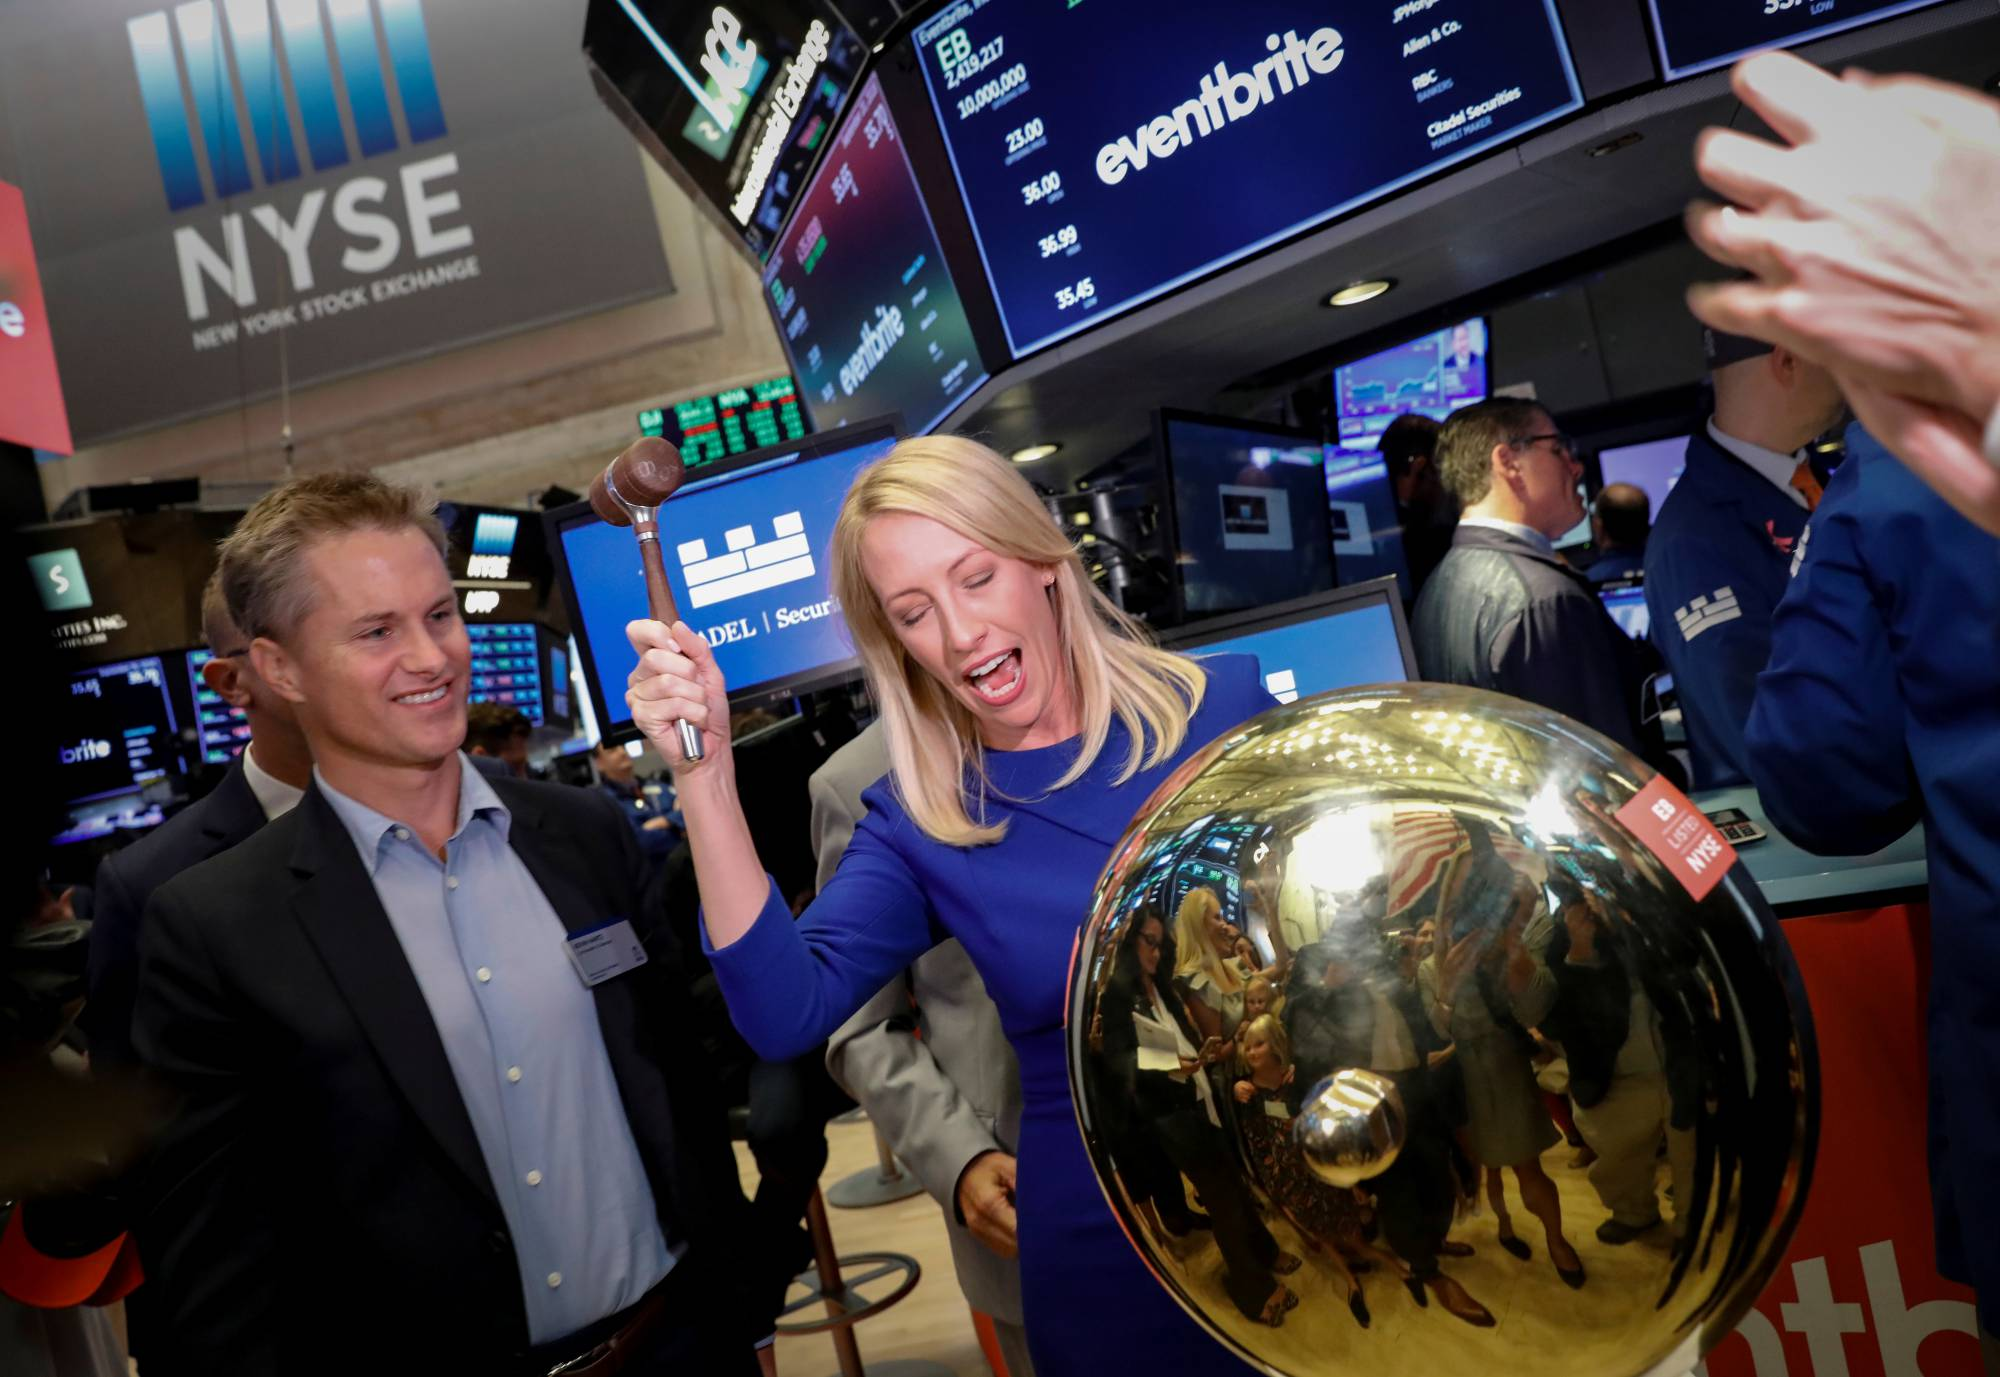 Eventbrite Inc. CEO Julia Hartz stands next to her husband Kevin Hartz, Co-Founder and Chairman of Eventbrite, as she rings a ceremonial bell to celebrate their company's IPO at the NYSE in New York